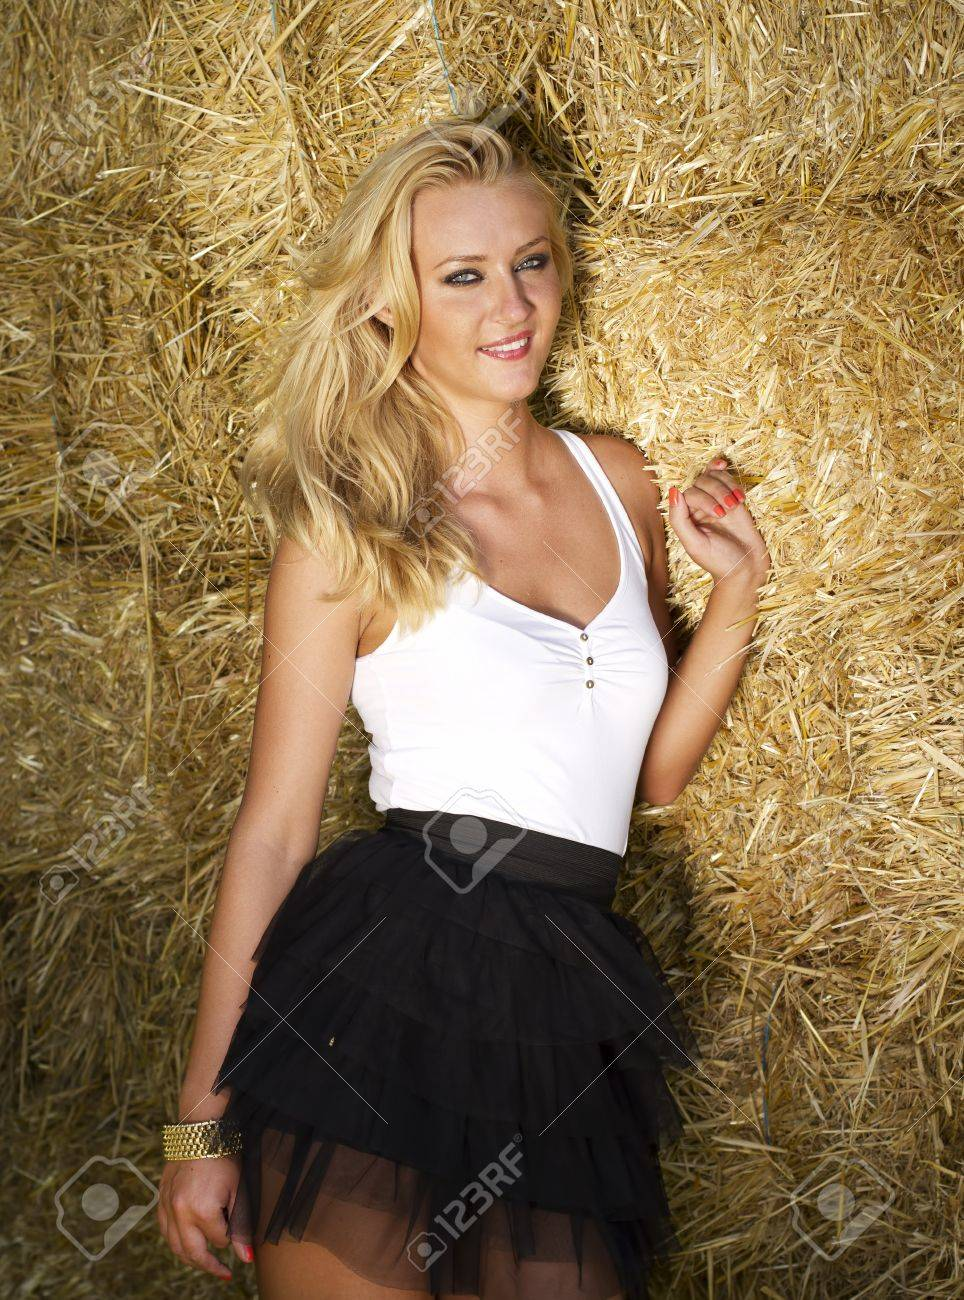 beautiful sex young blonde near a straw bales wall stock photo